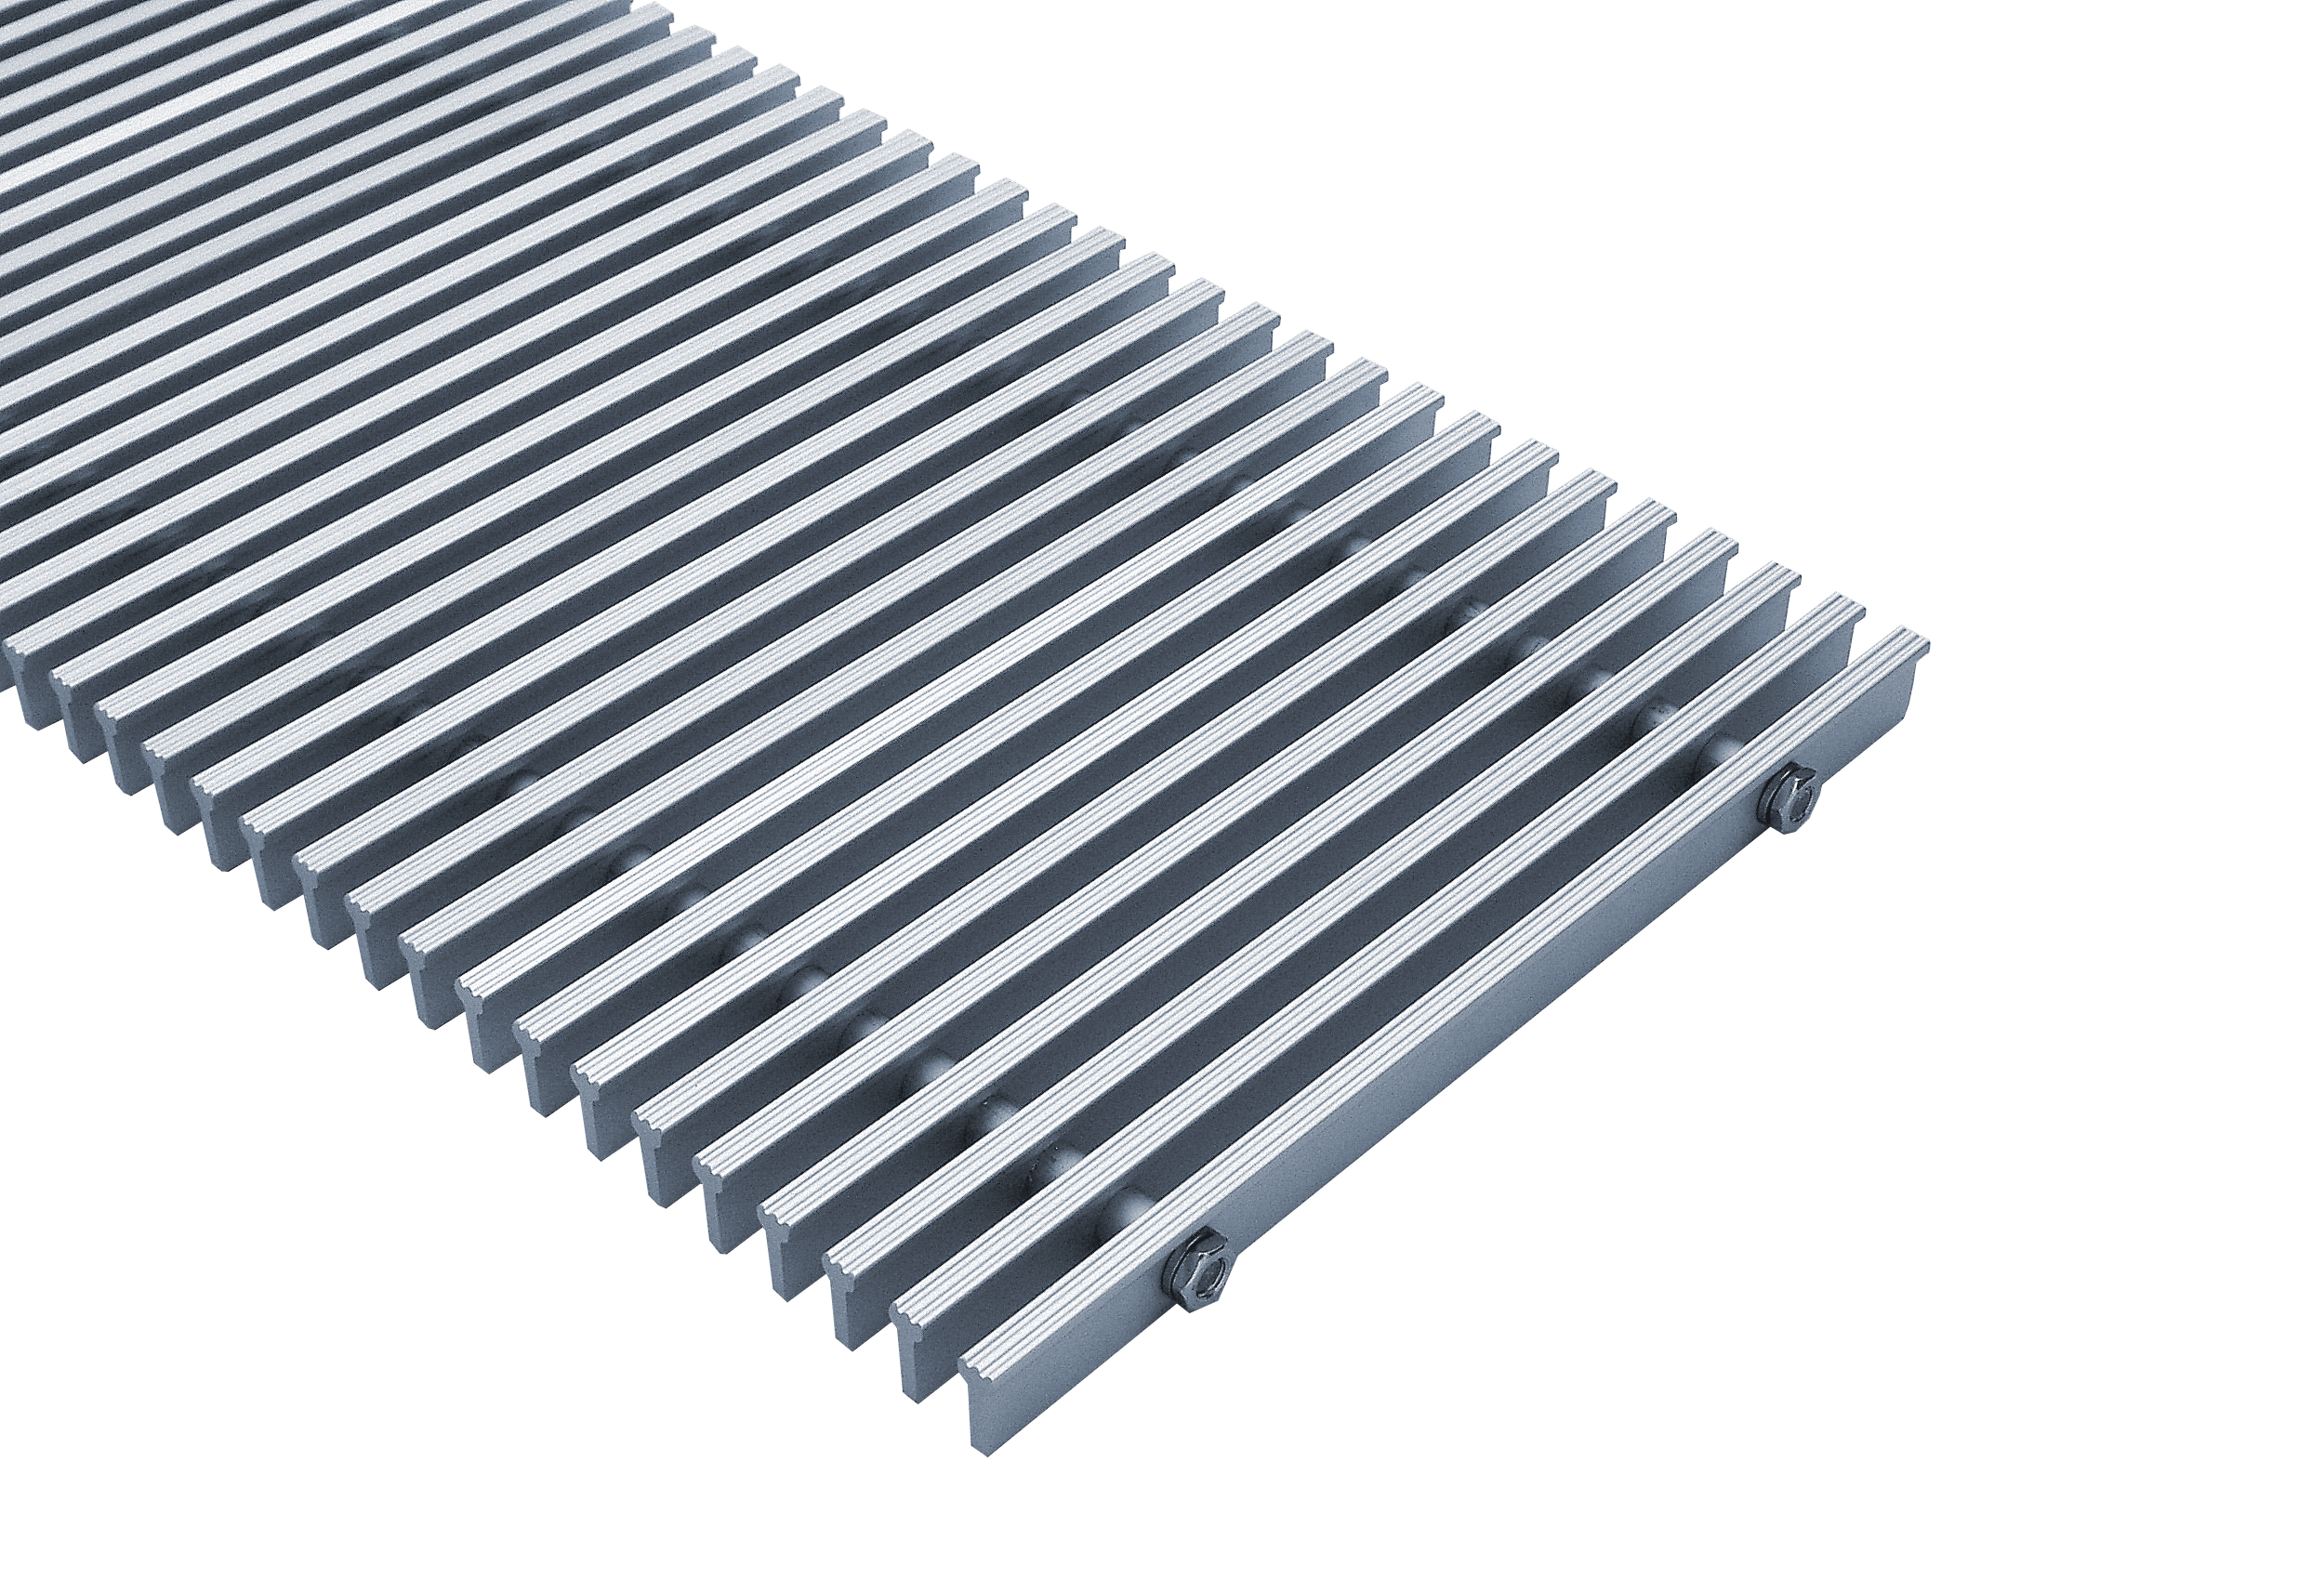 floor products dsc fg plumbing grate stoddart drains fixtures troughs commercial wastes architectural grates and